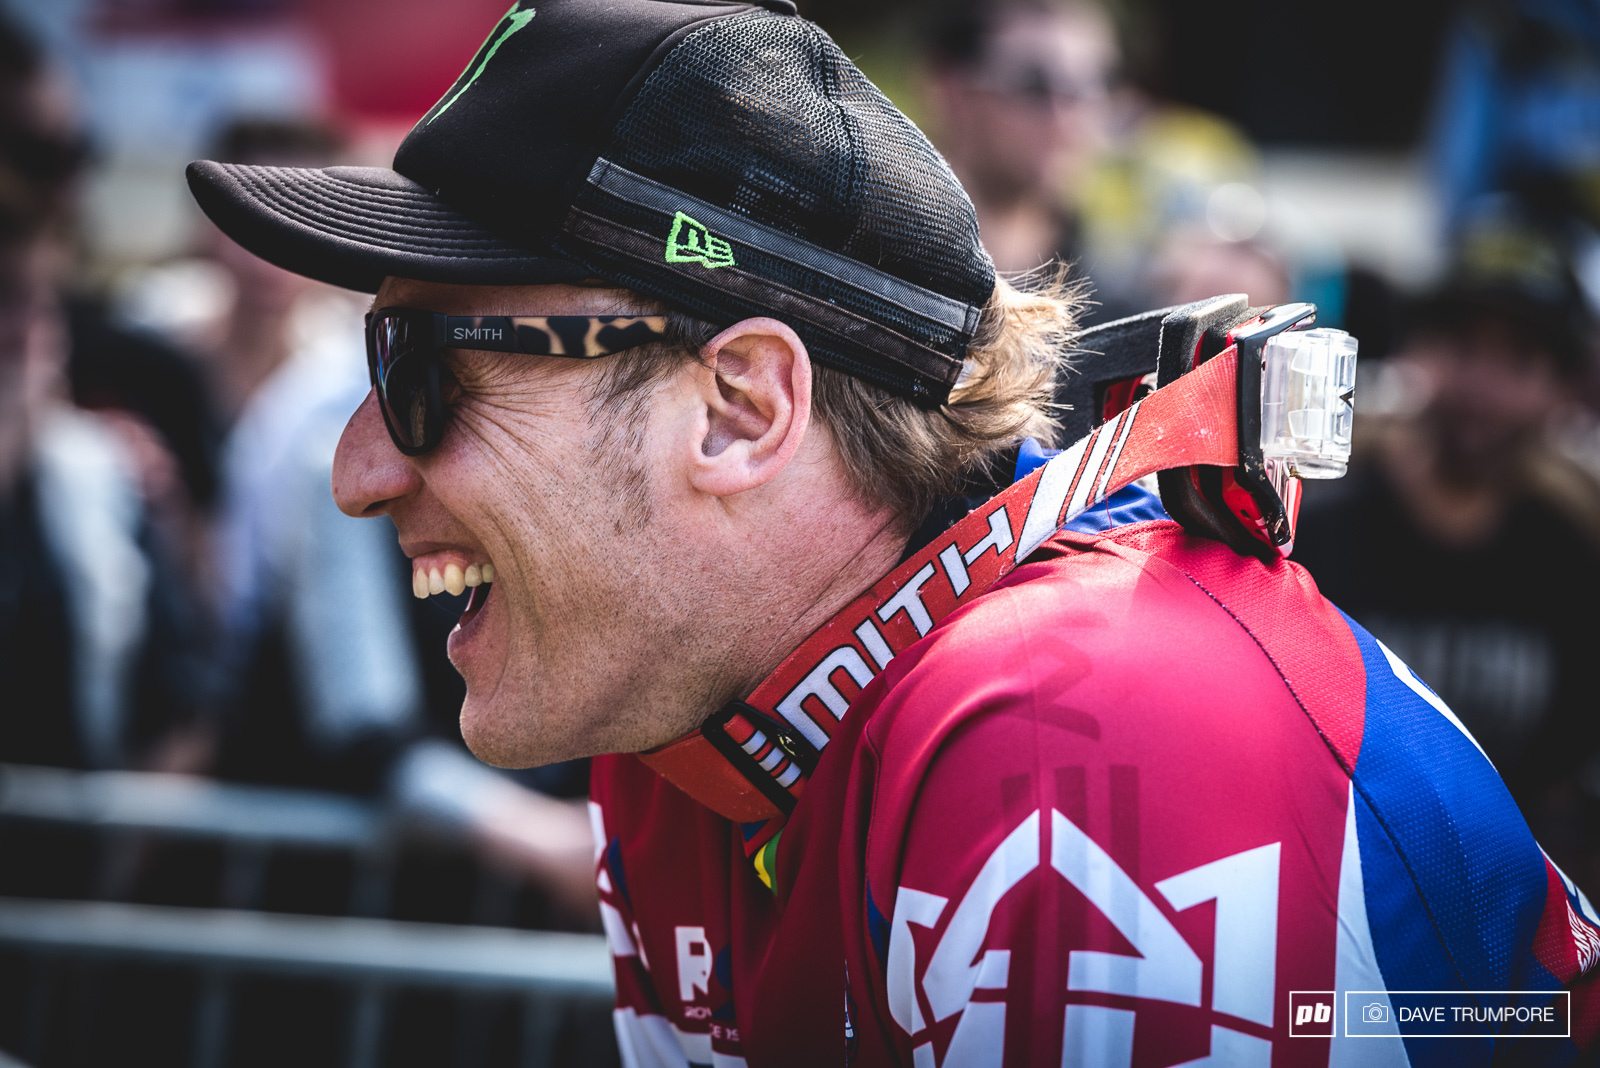 Steve Peat was enjoying the atmosphere is the World Cup circuit after missing most of last season with an ACL injury. It s hard to believe this will be his last though.